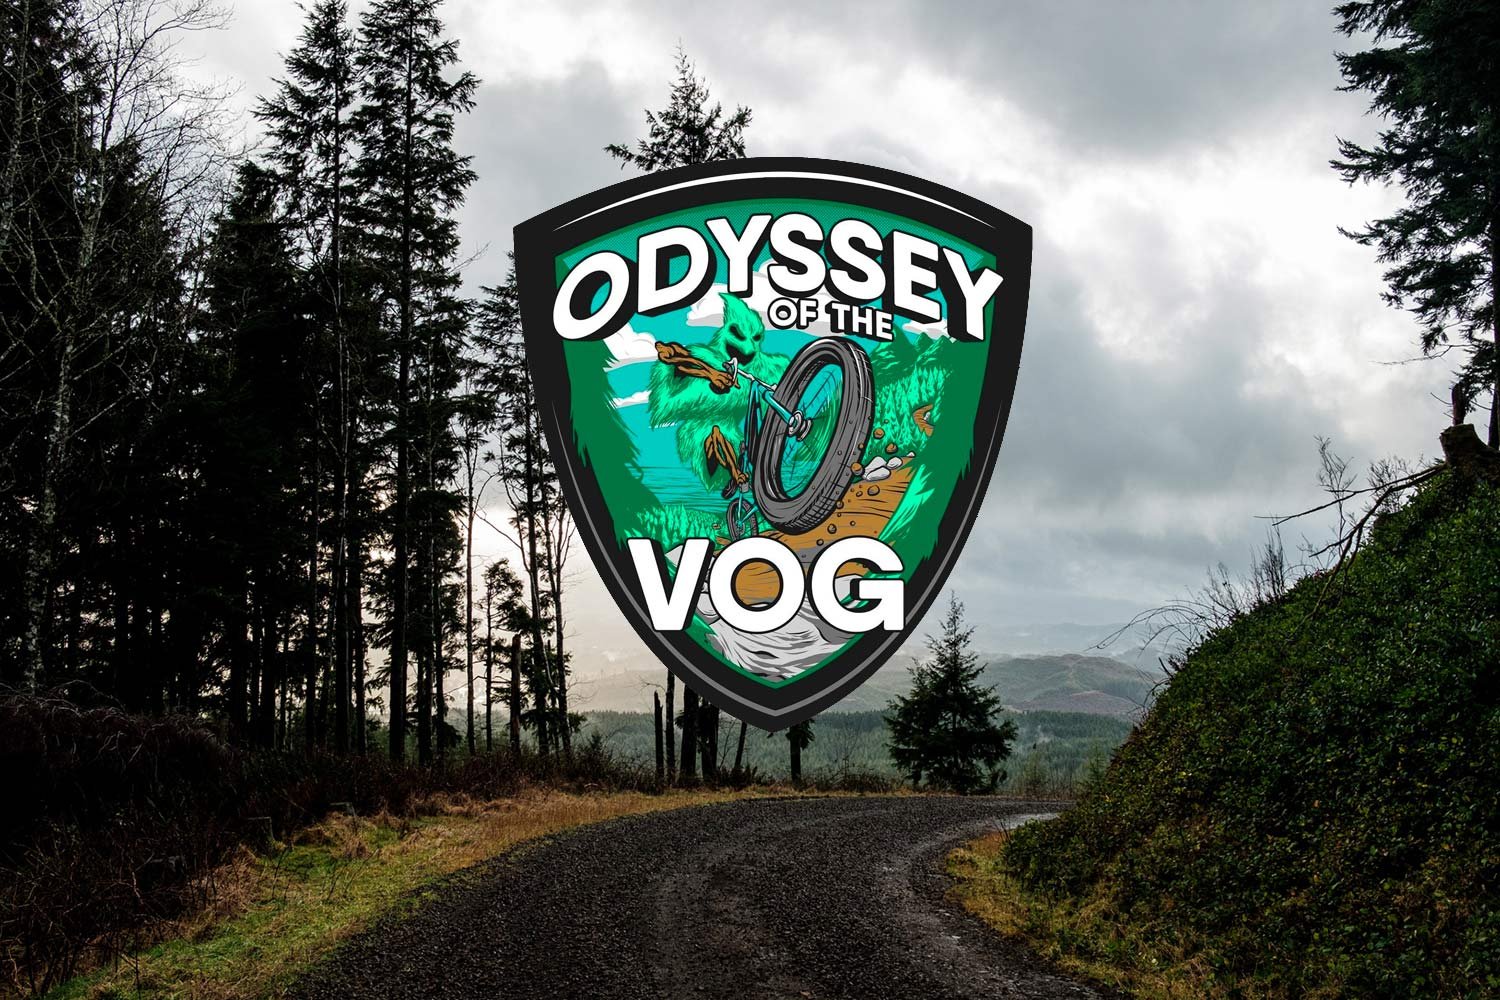 The Odyssey of the VOG gravel bikepacking race